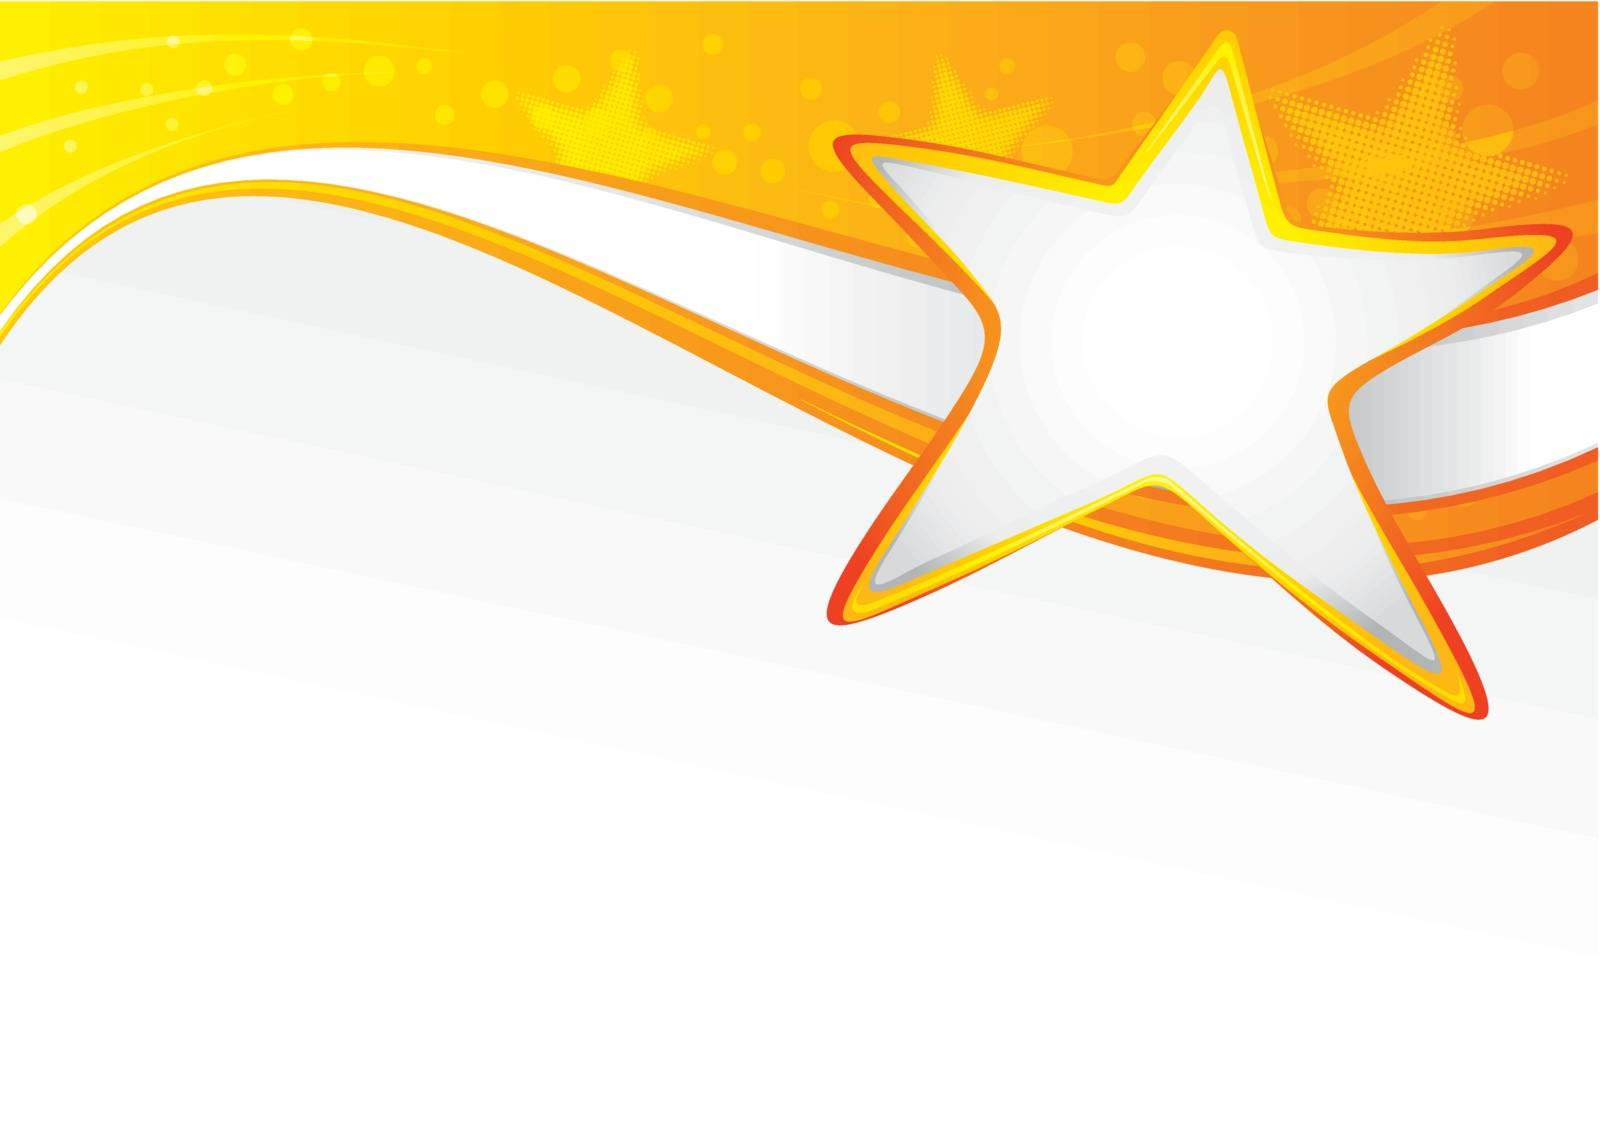 Background with star in vibrant colors